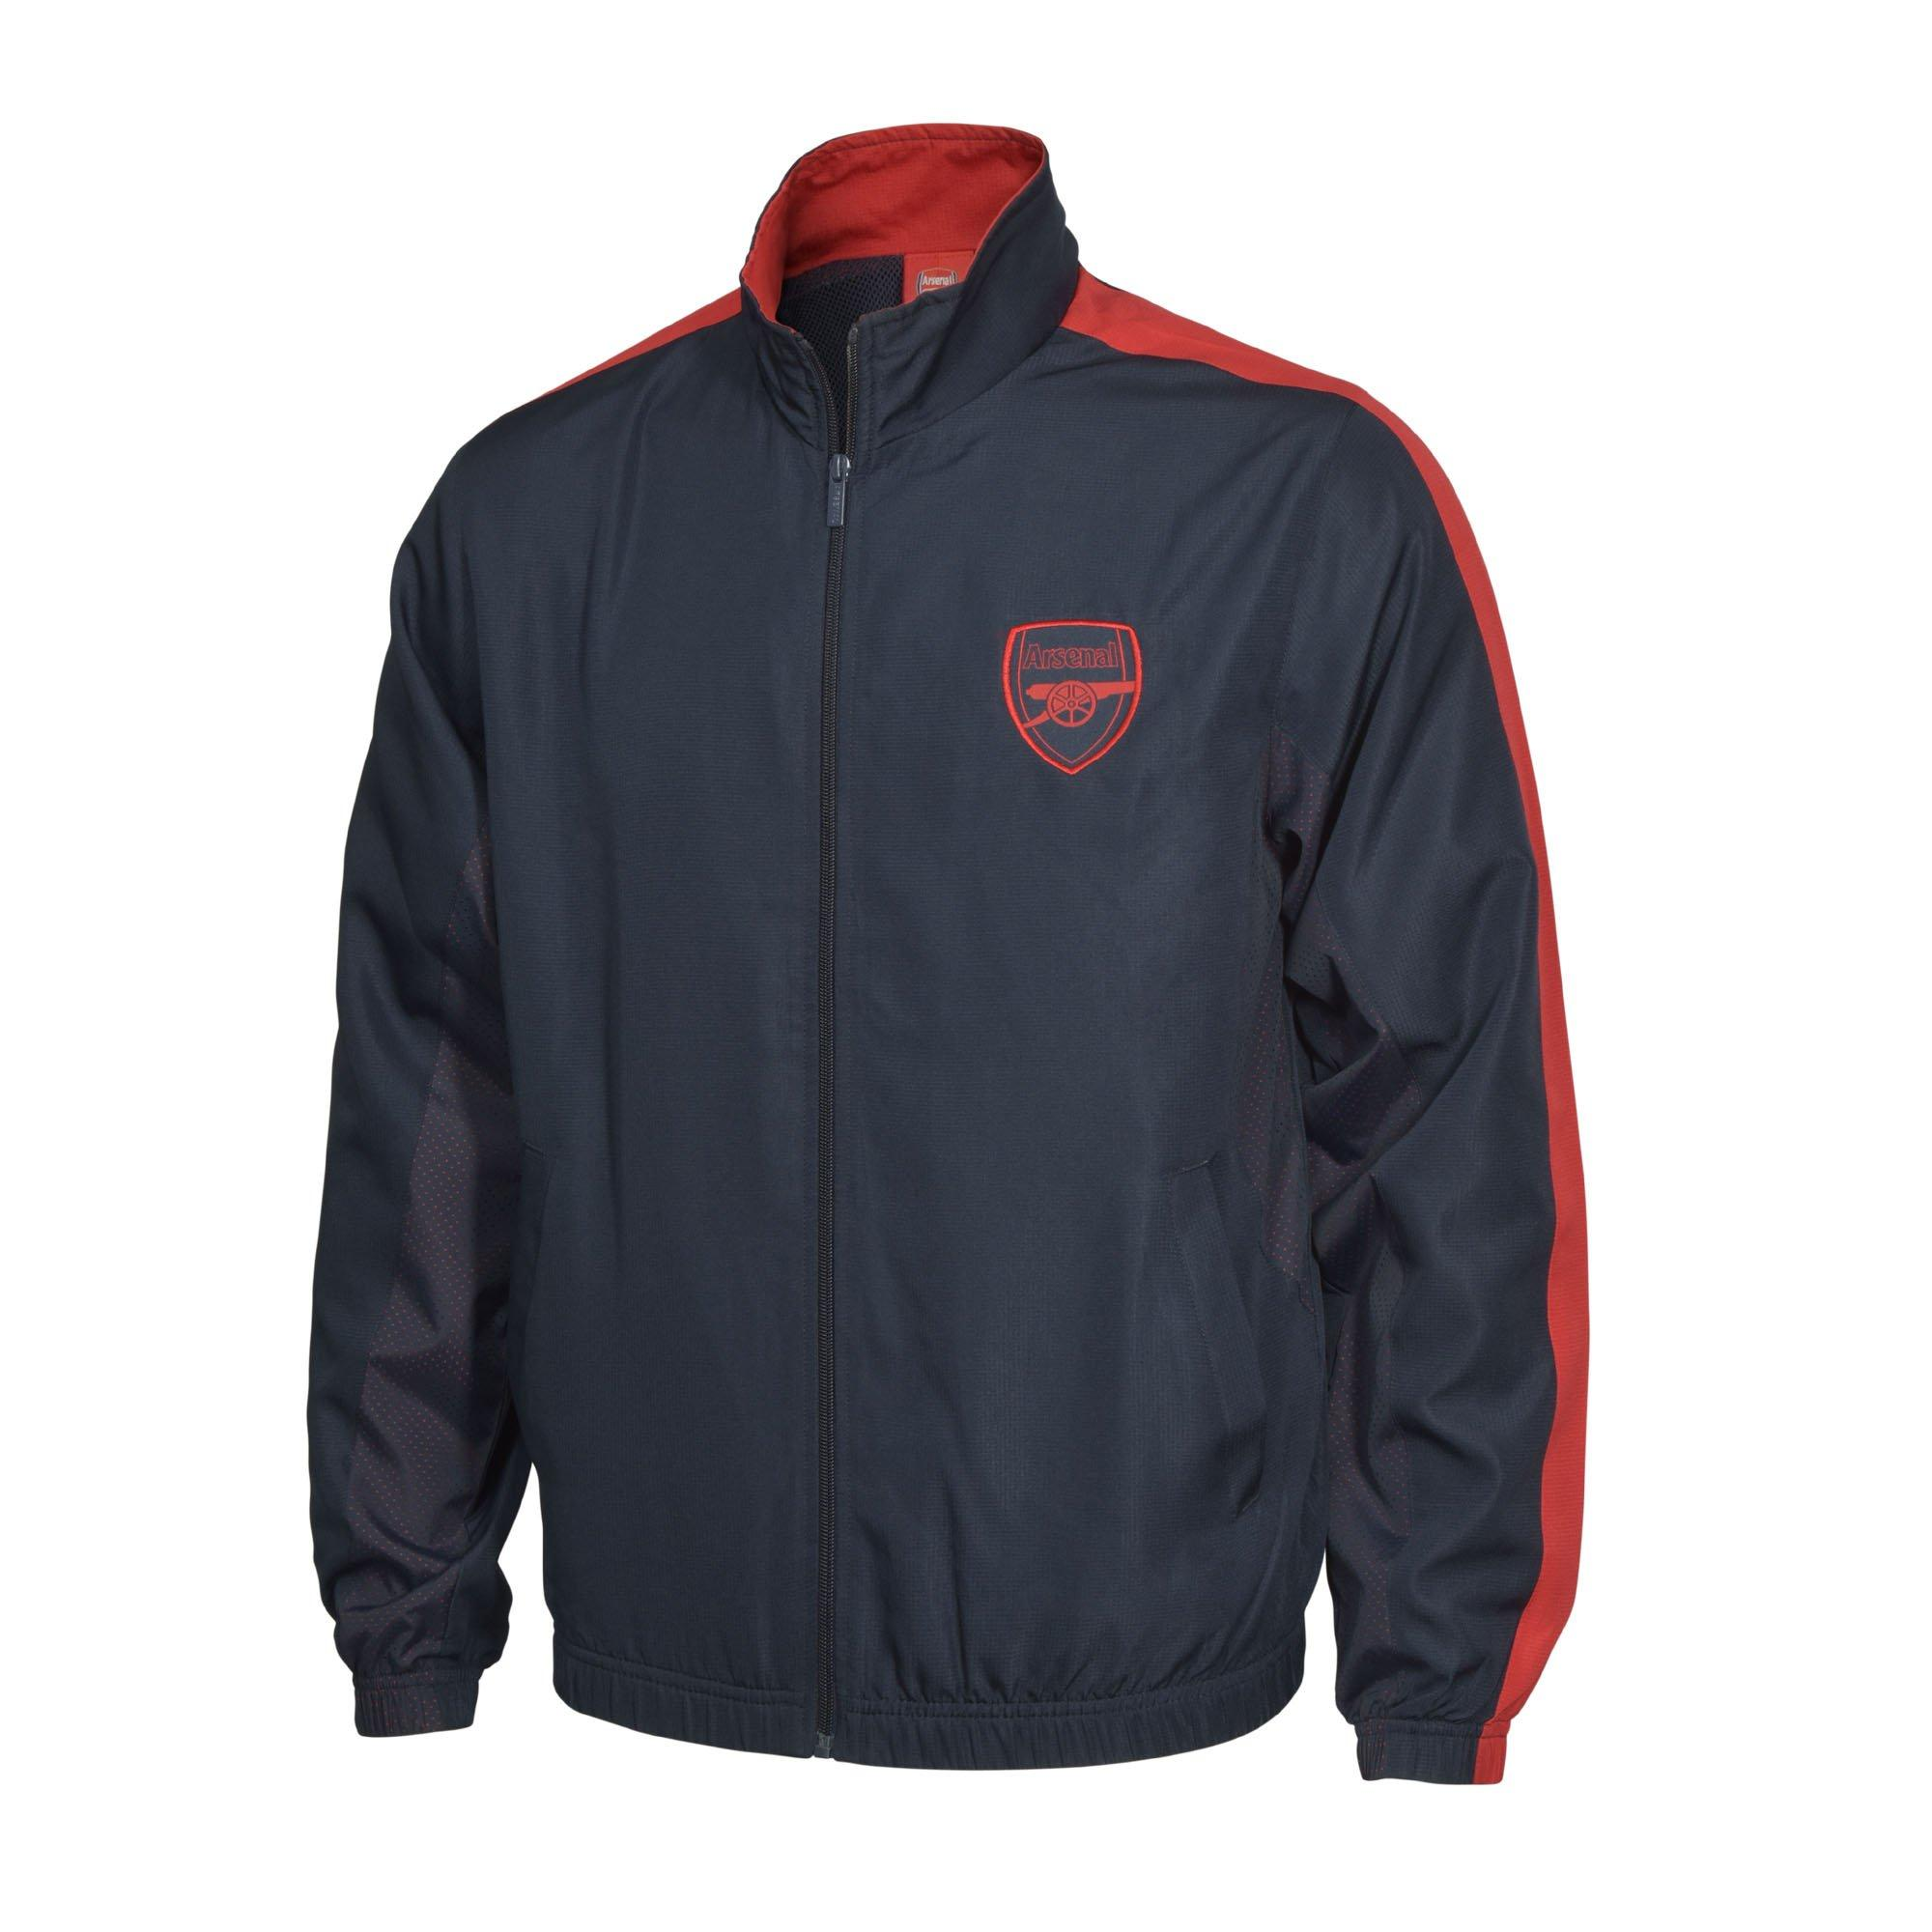 7880a3b9a arsenal clothing shop on sale   OFF69% Discounts